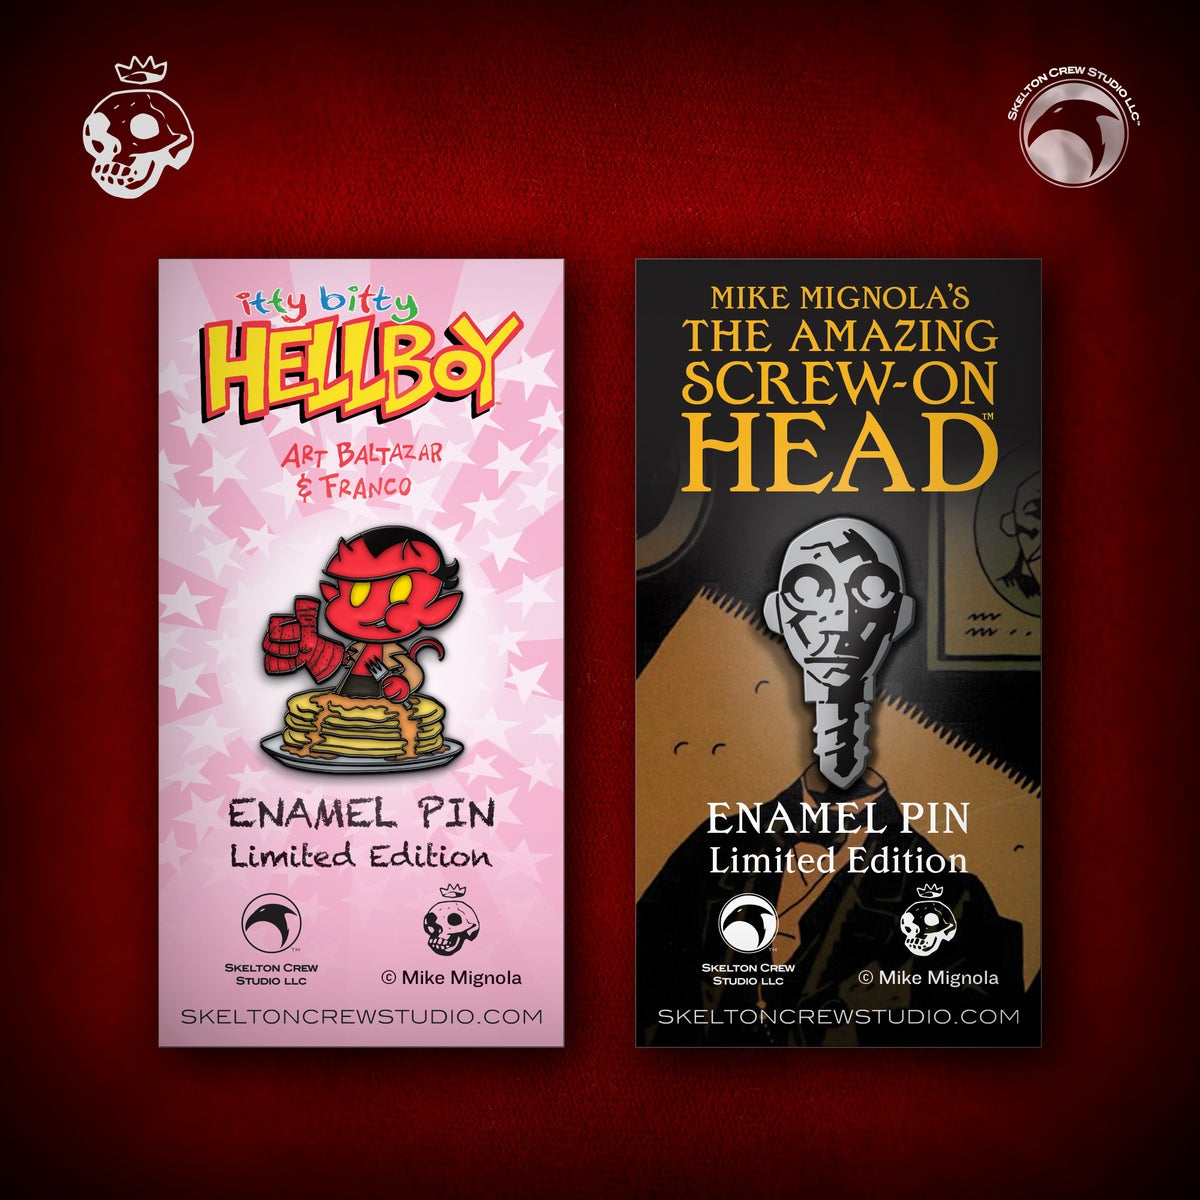 Skelton Crew Studio — Hellboy/B.P.R.D.: itty bitty Hellboy and The Amazing  Screw-On Head pin set!